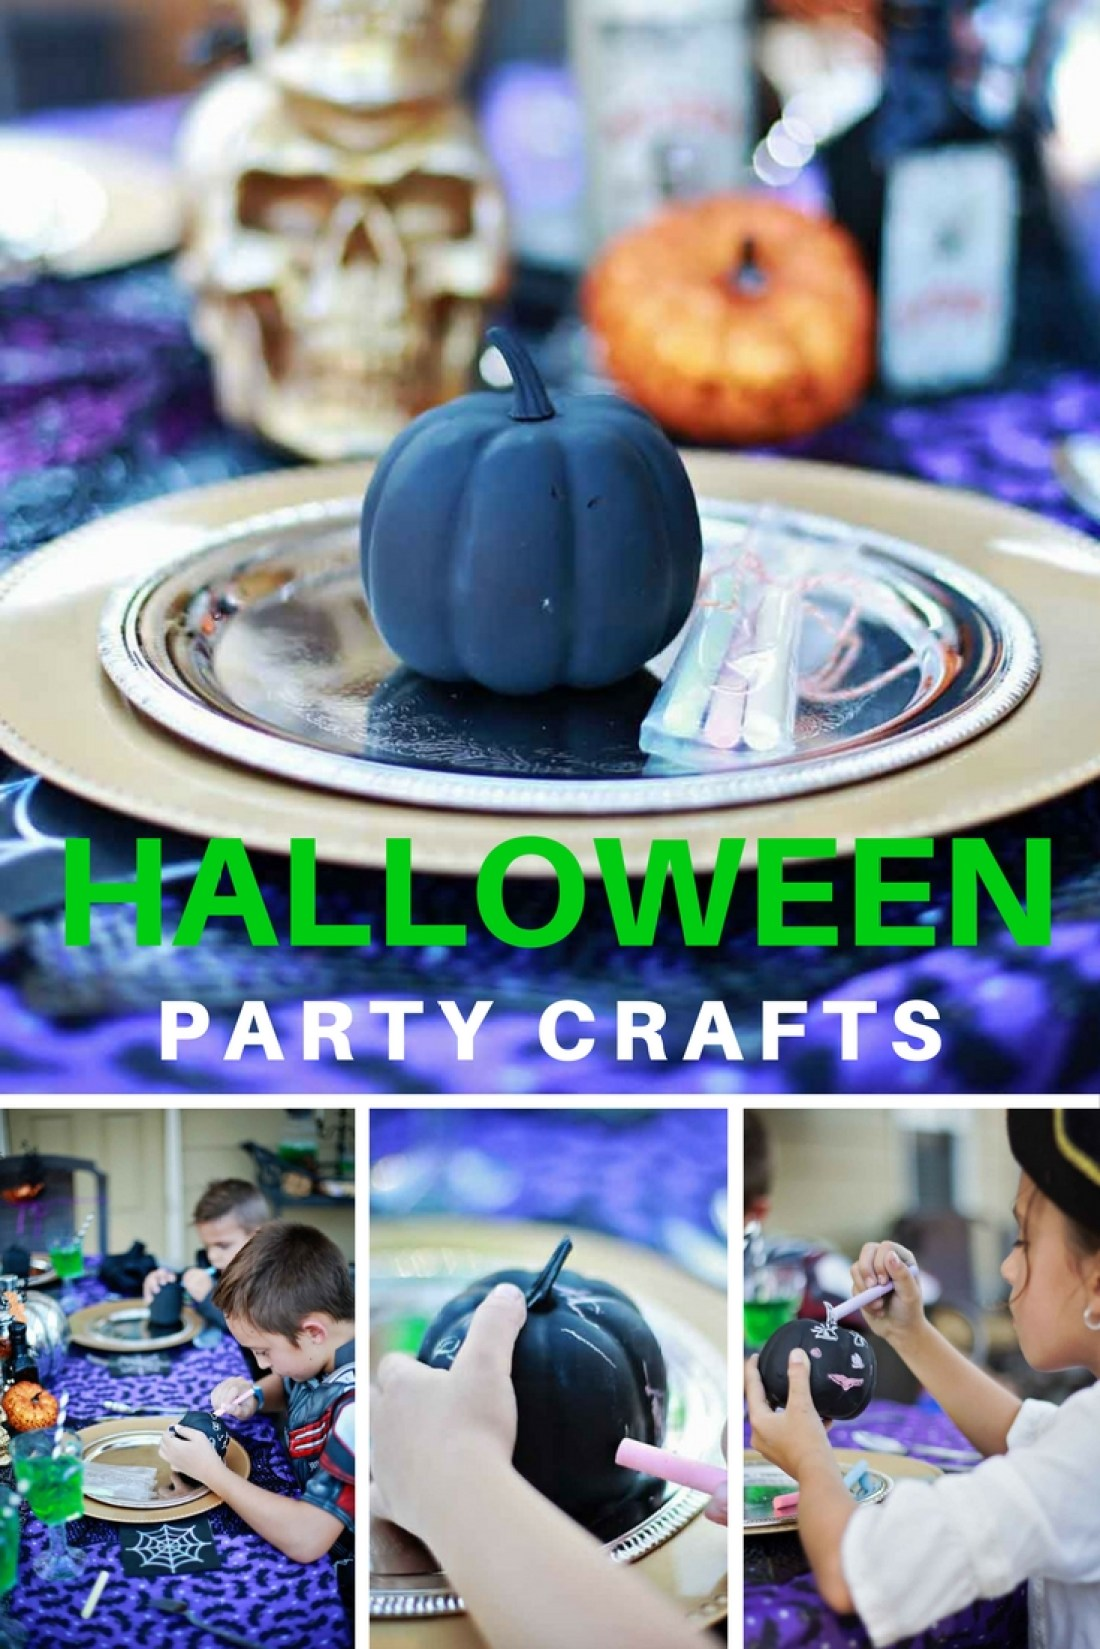 Halloween Party crafts including Chalk Paint Jack-o-lanterns, or CHalk-O-lanterns!